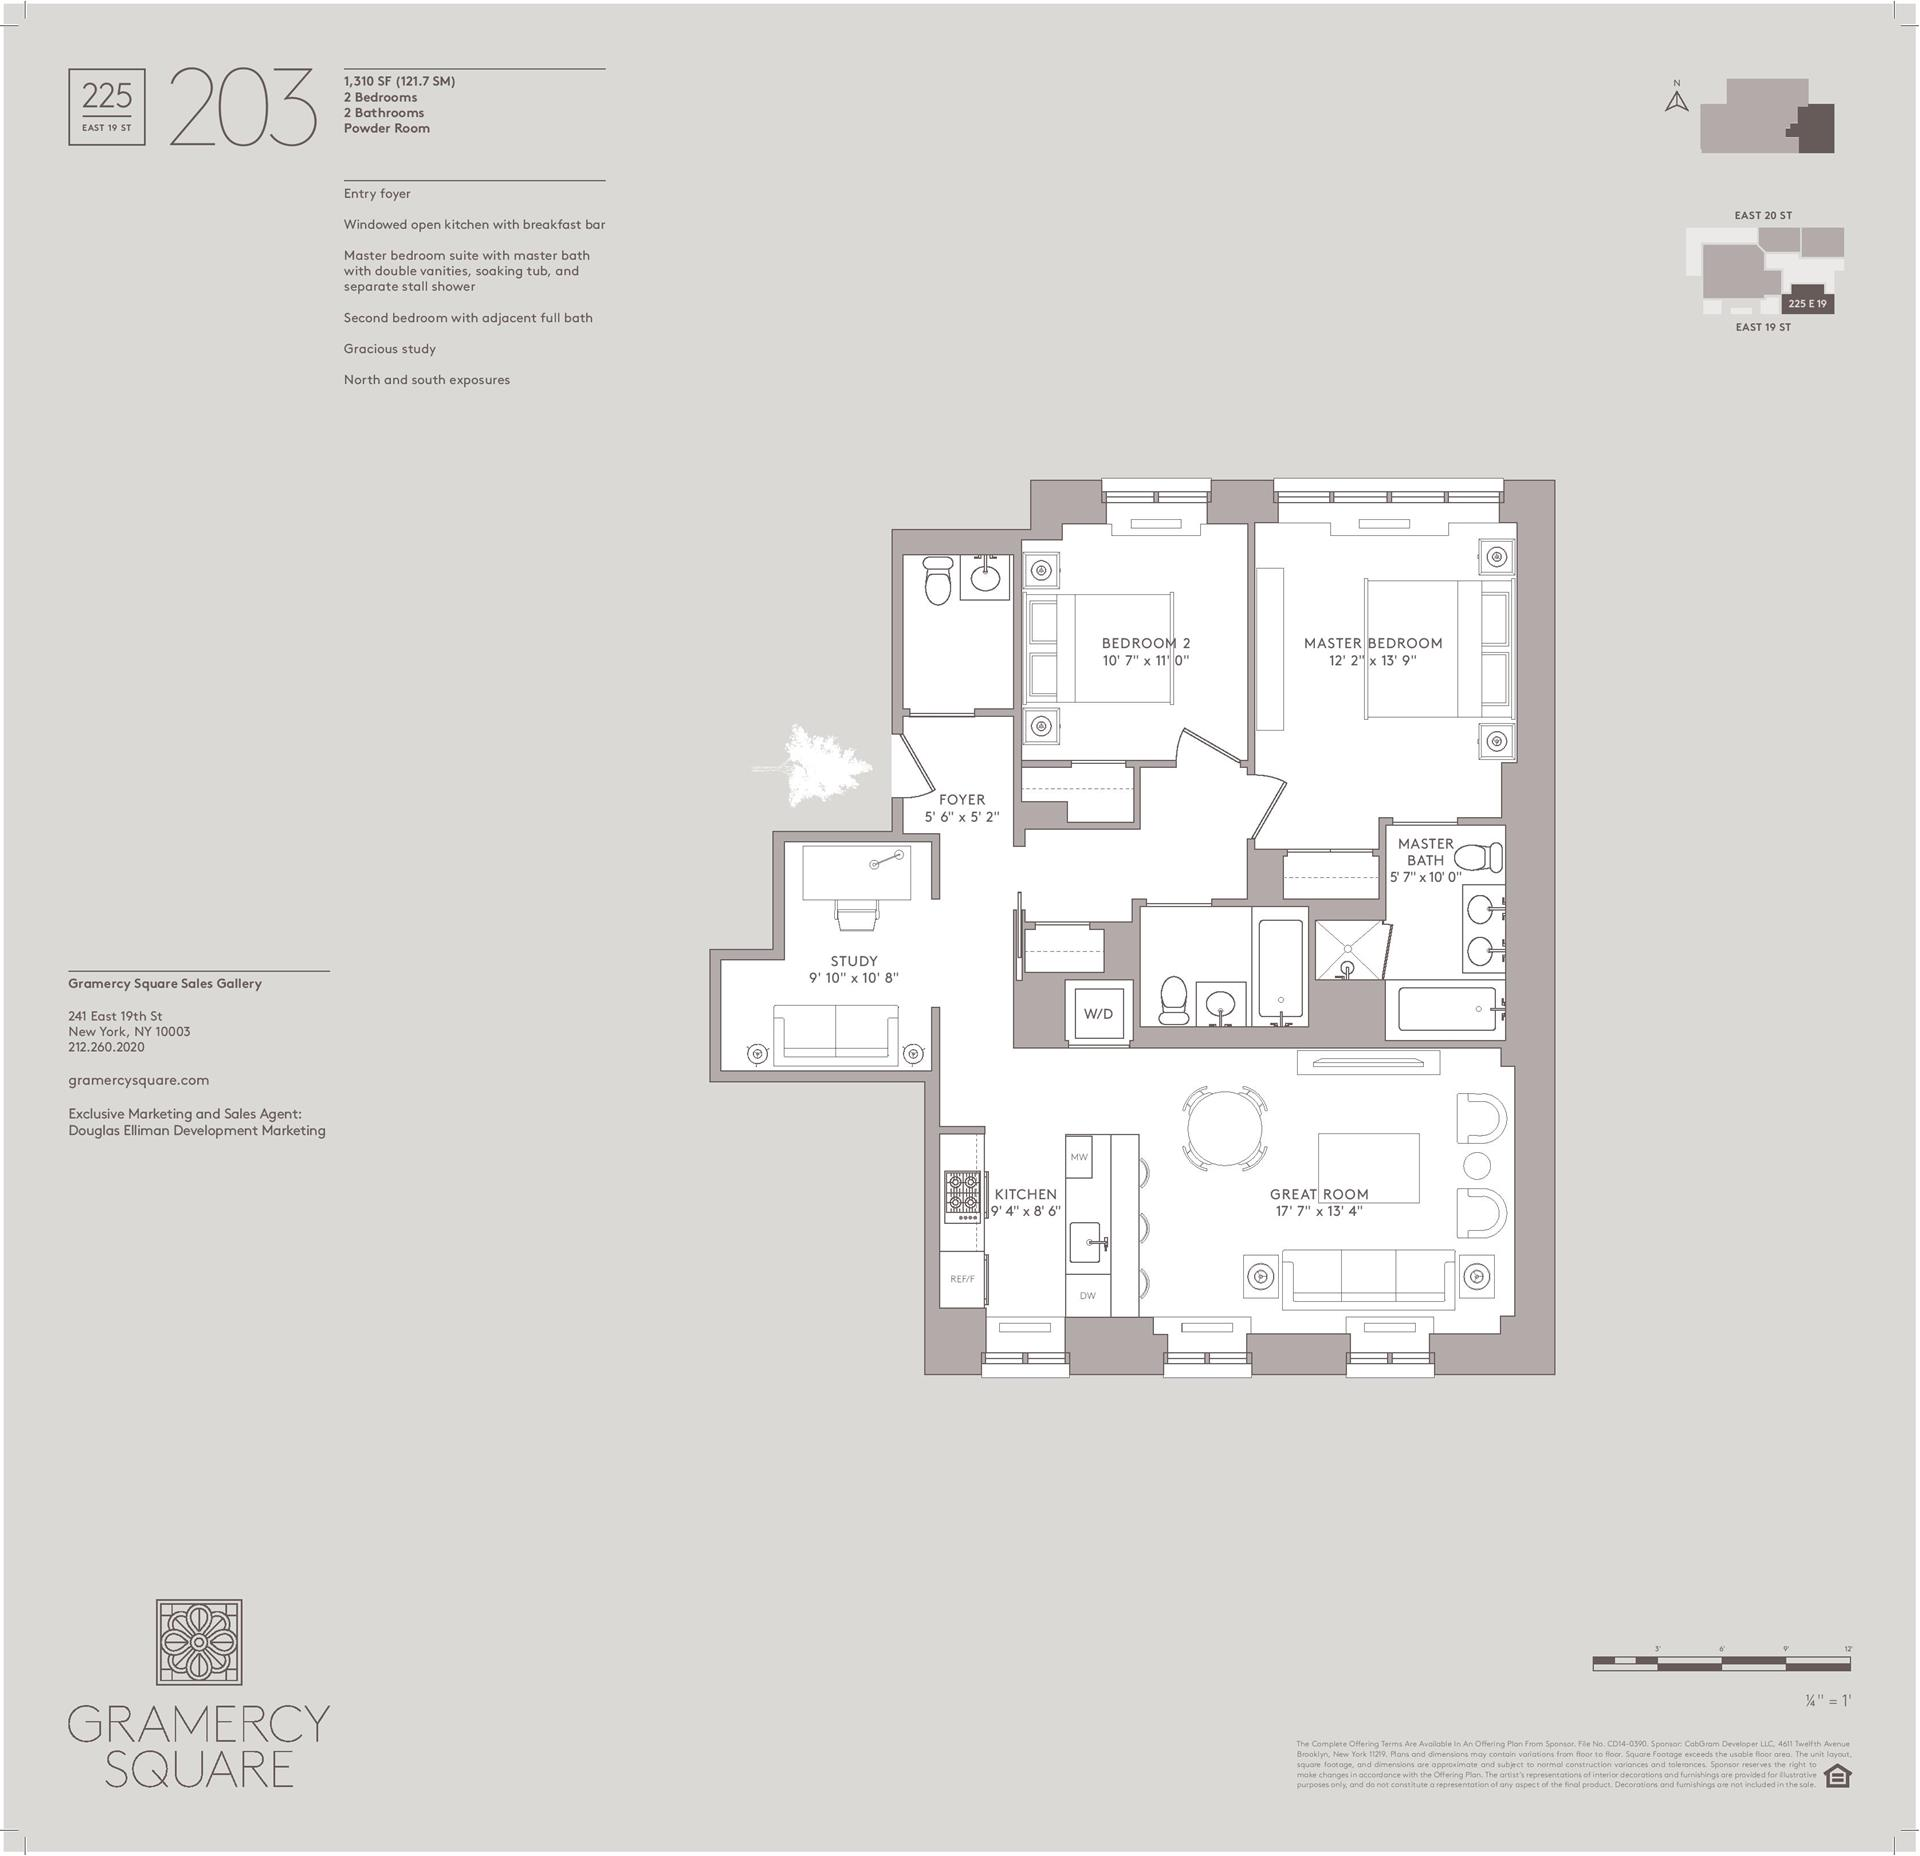 Floor plan of Gramercy Square, 225 East 19th St, 203 - Gramercy - Union Square, New York